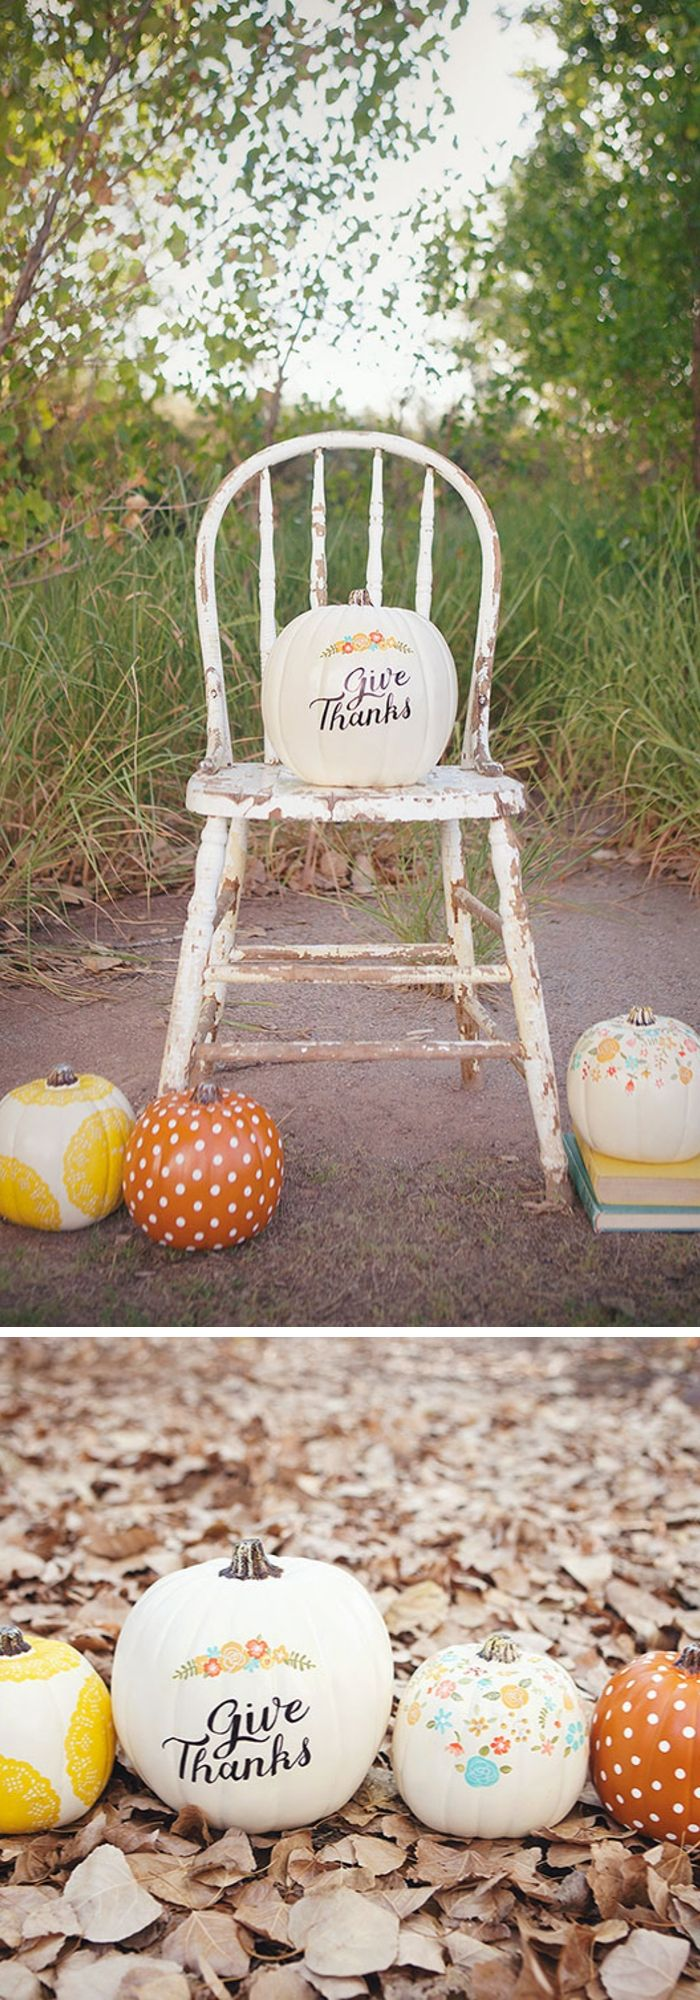 DIY Hand-Painted Pumpkins With 'Give Thanks' Letters